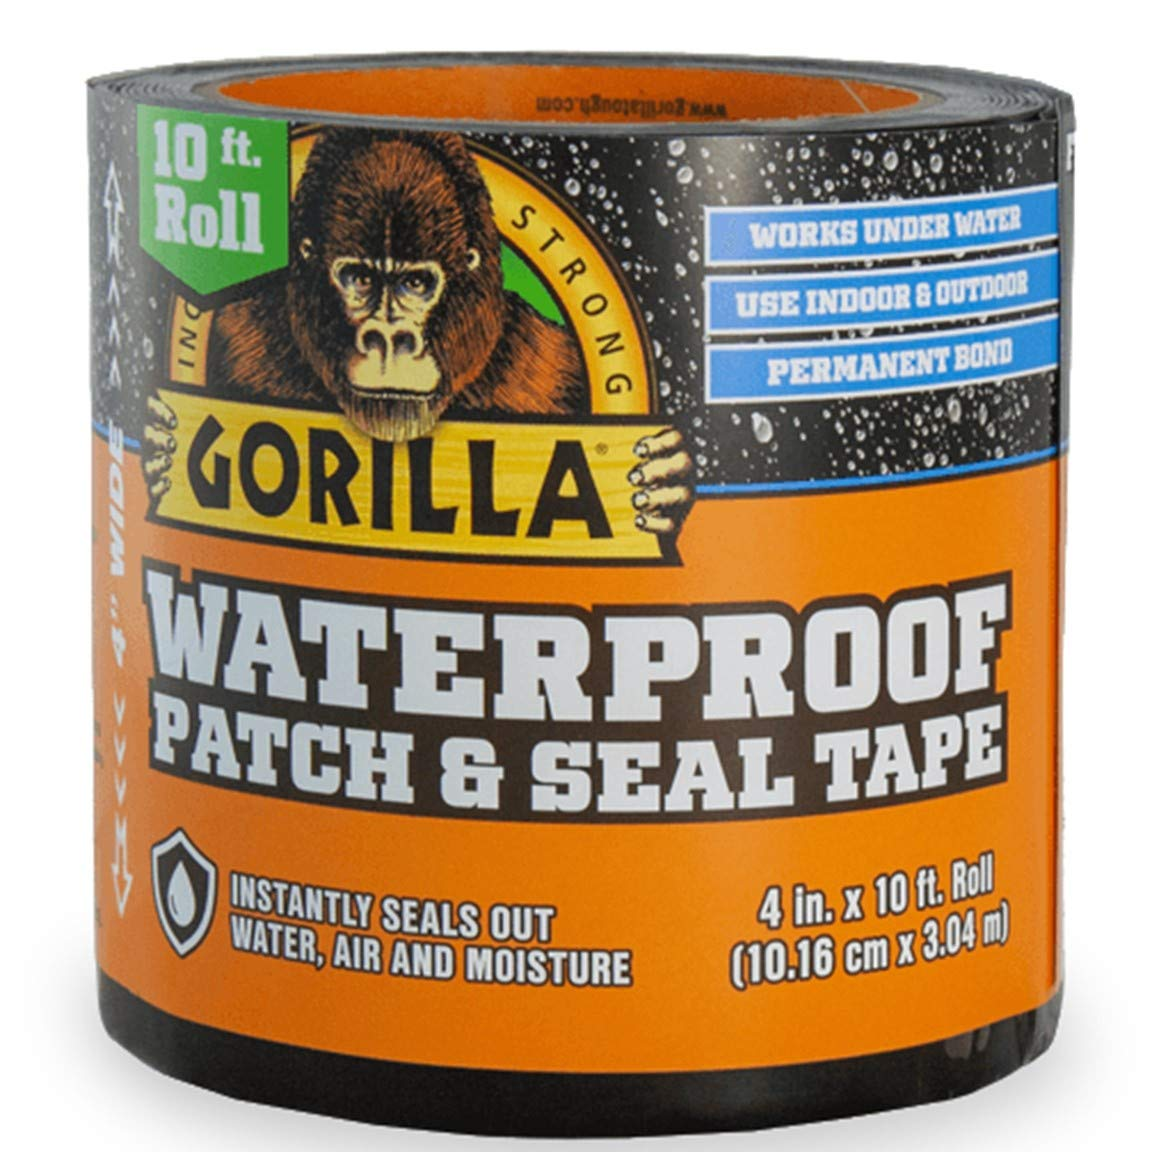 "Gorilla 4612502 Waterproof Patch & Seal Tape 4"" x 10' Black,"